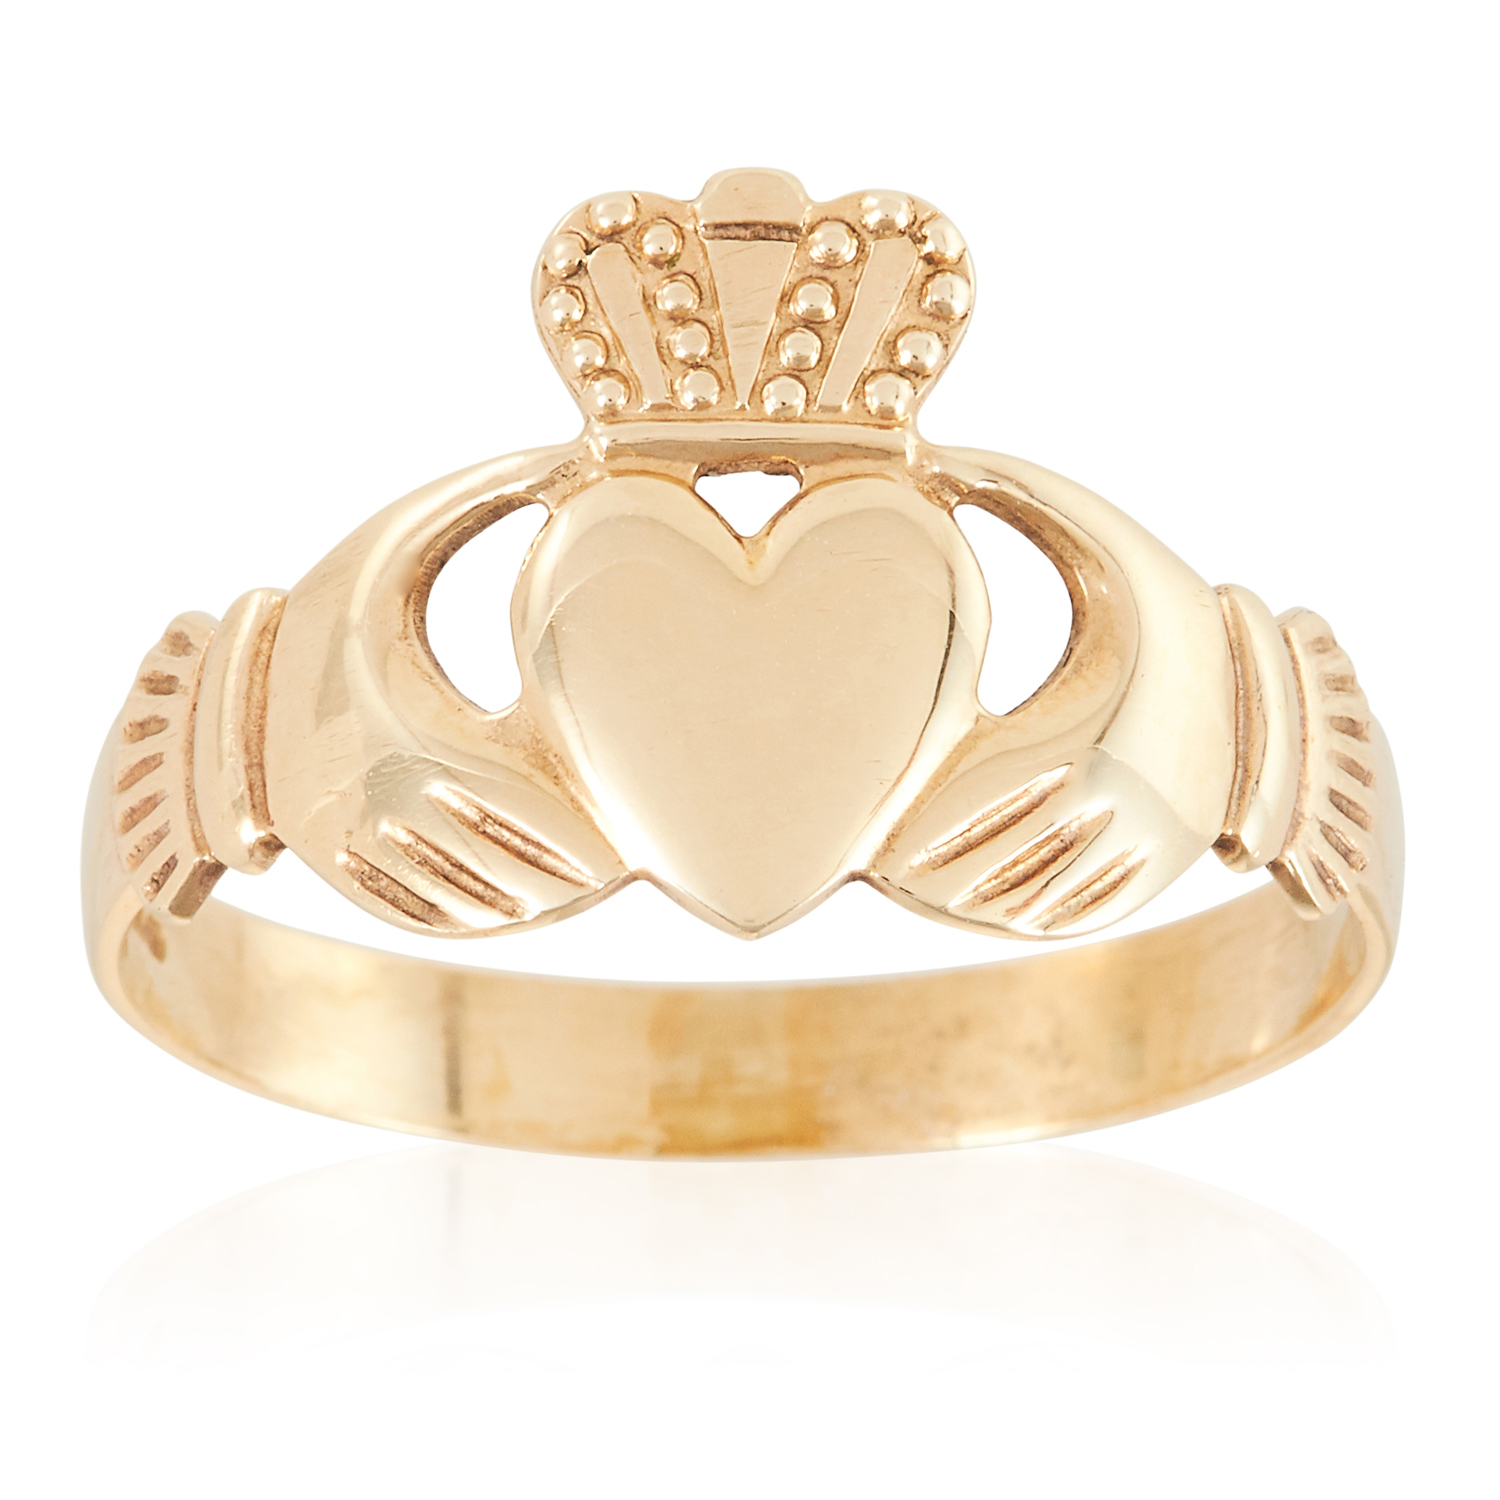 A GOLD CLADDAGH RING in yellow gold, depicting Claddagh motif, stamped 375, size Q / 8, 1.9g.